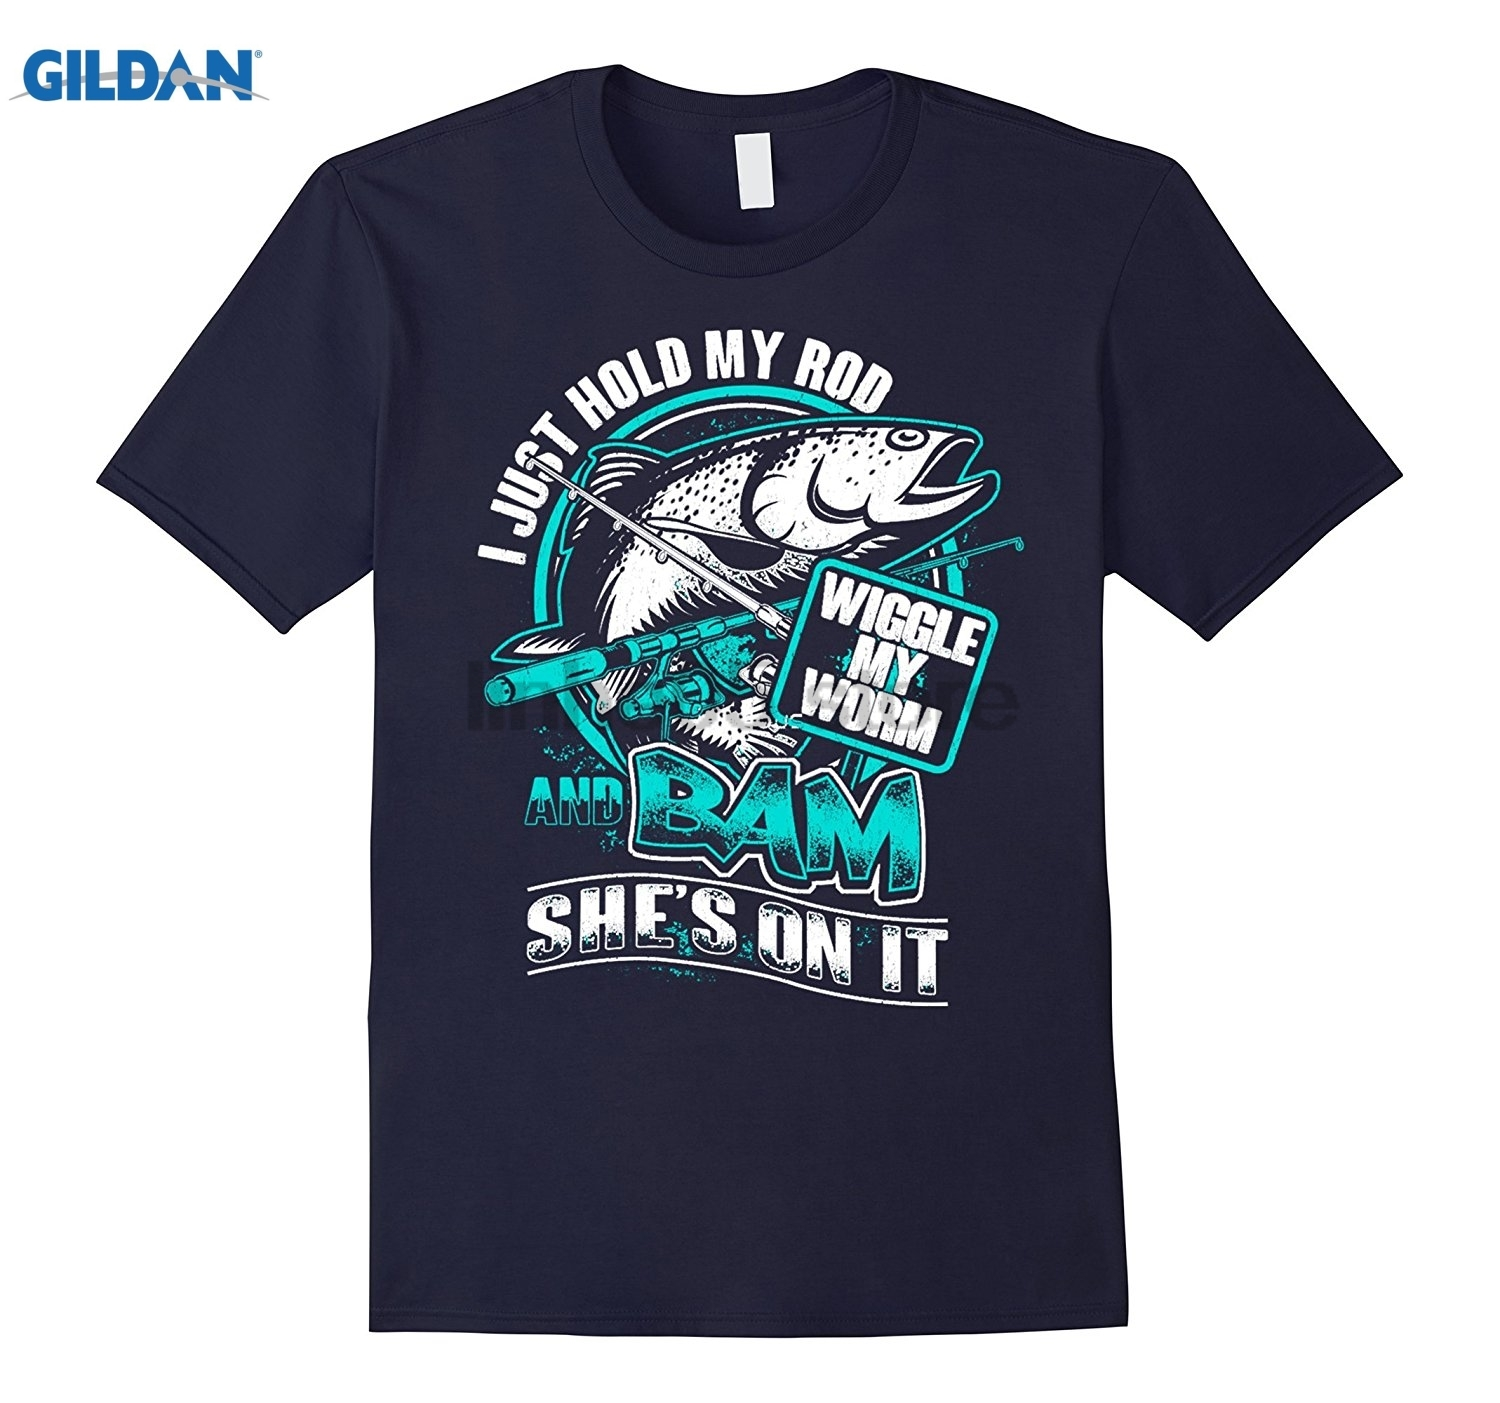 GILDAN I Just Hold My Rod Wiggle My Worm And Bam Shes On It Womens T-shirt ...